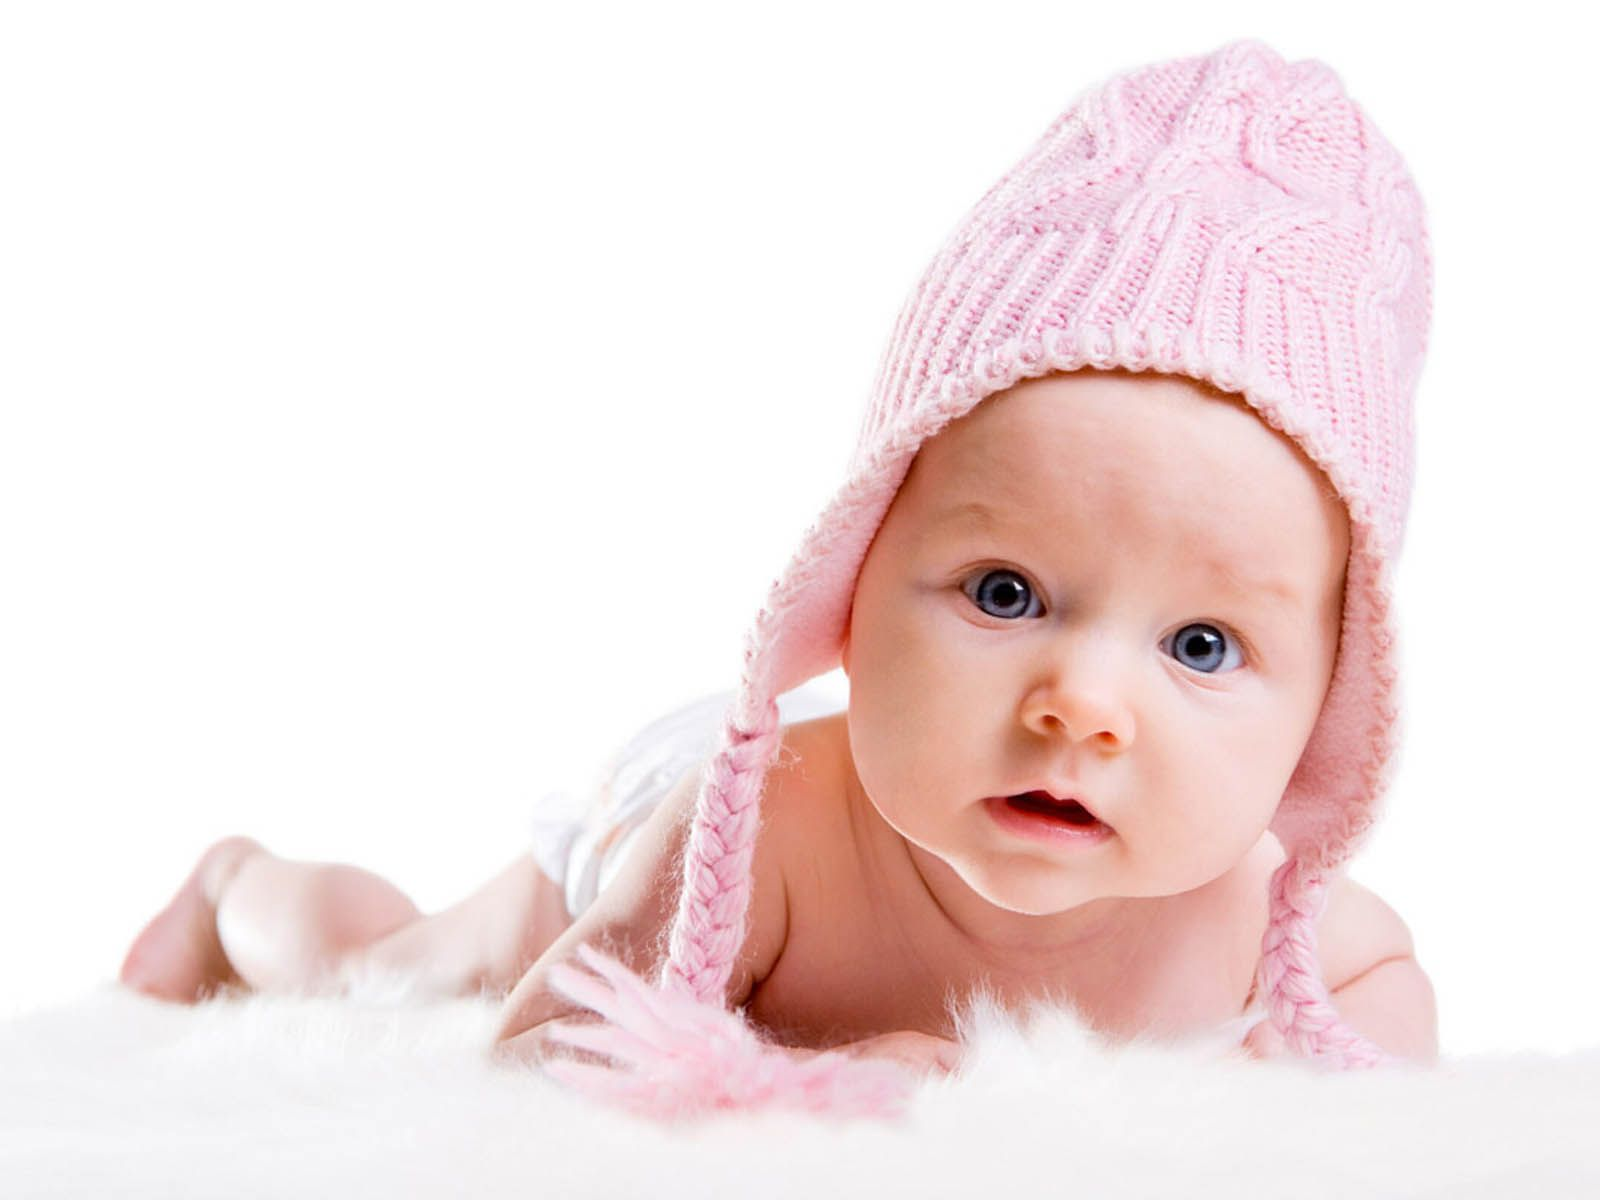 Baby In Pink Hat With Images Baby Pictures Baby Girl Names